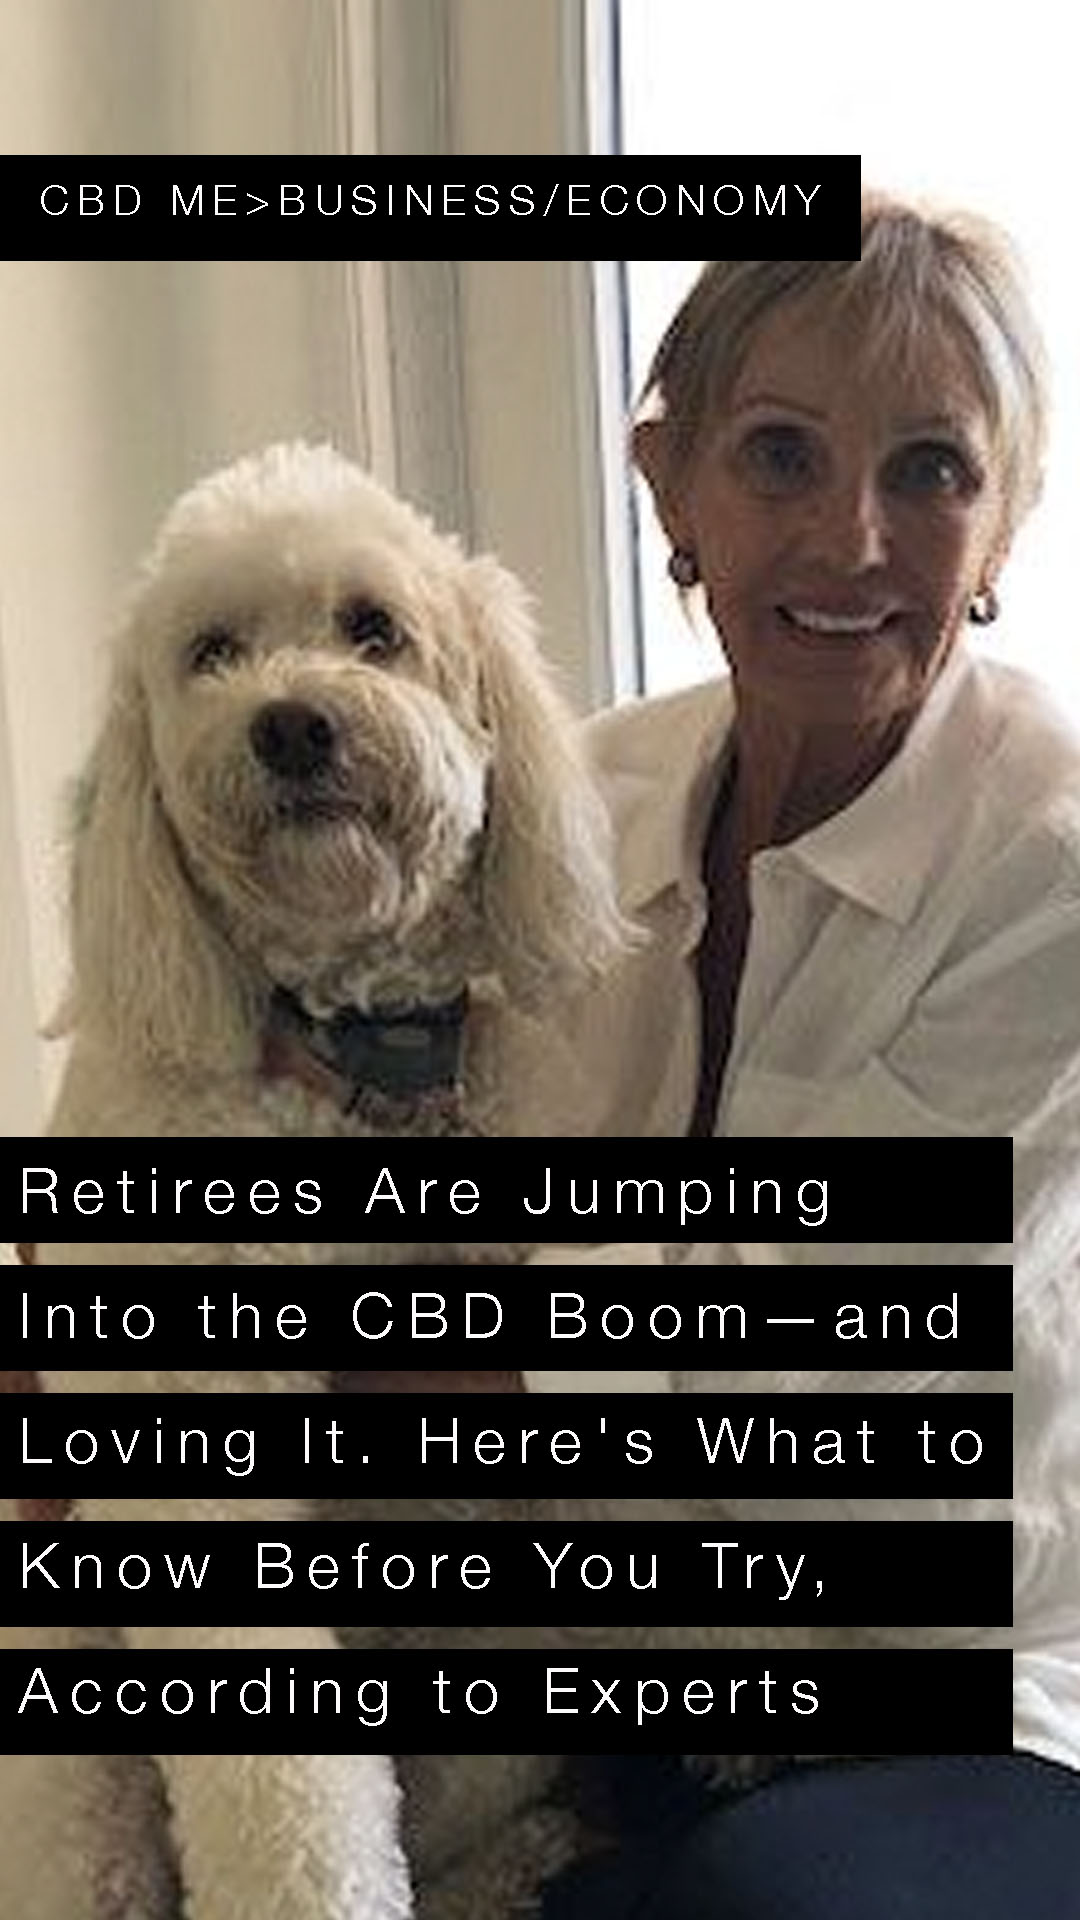 Retirees Are Jumping Into the CBD Boom—and Loving It. Here's What to Know Before You Try, According to Experts | YAHOO FINANCE